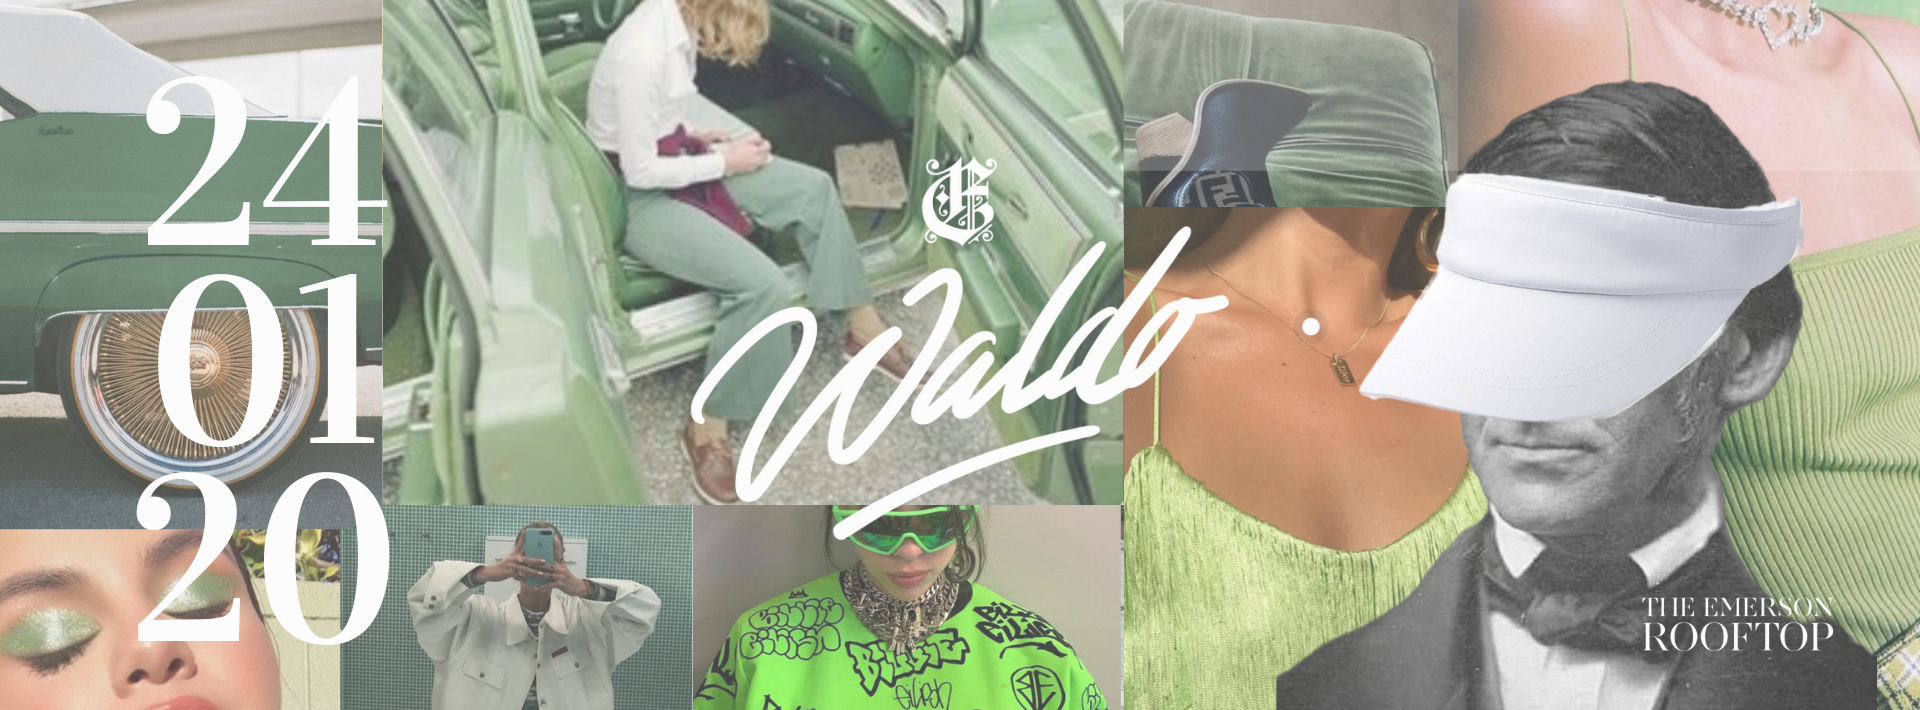 WEBSITE WALDO FRIDAY 24.1.20